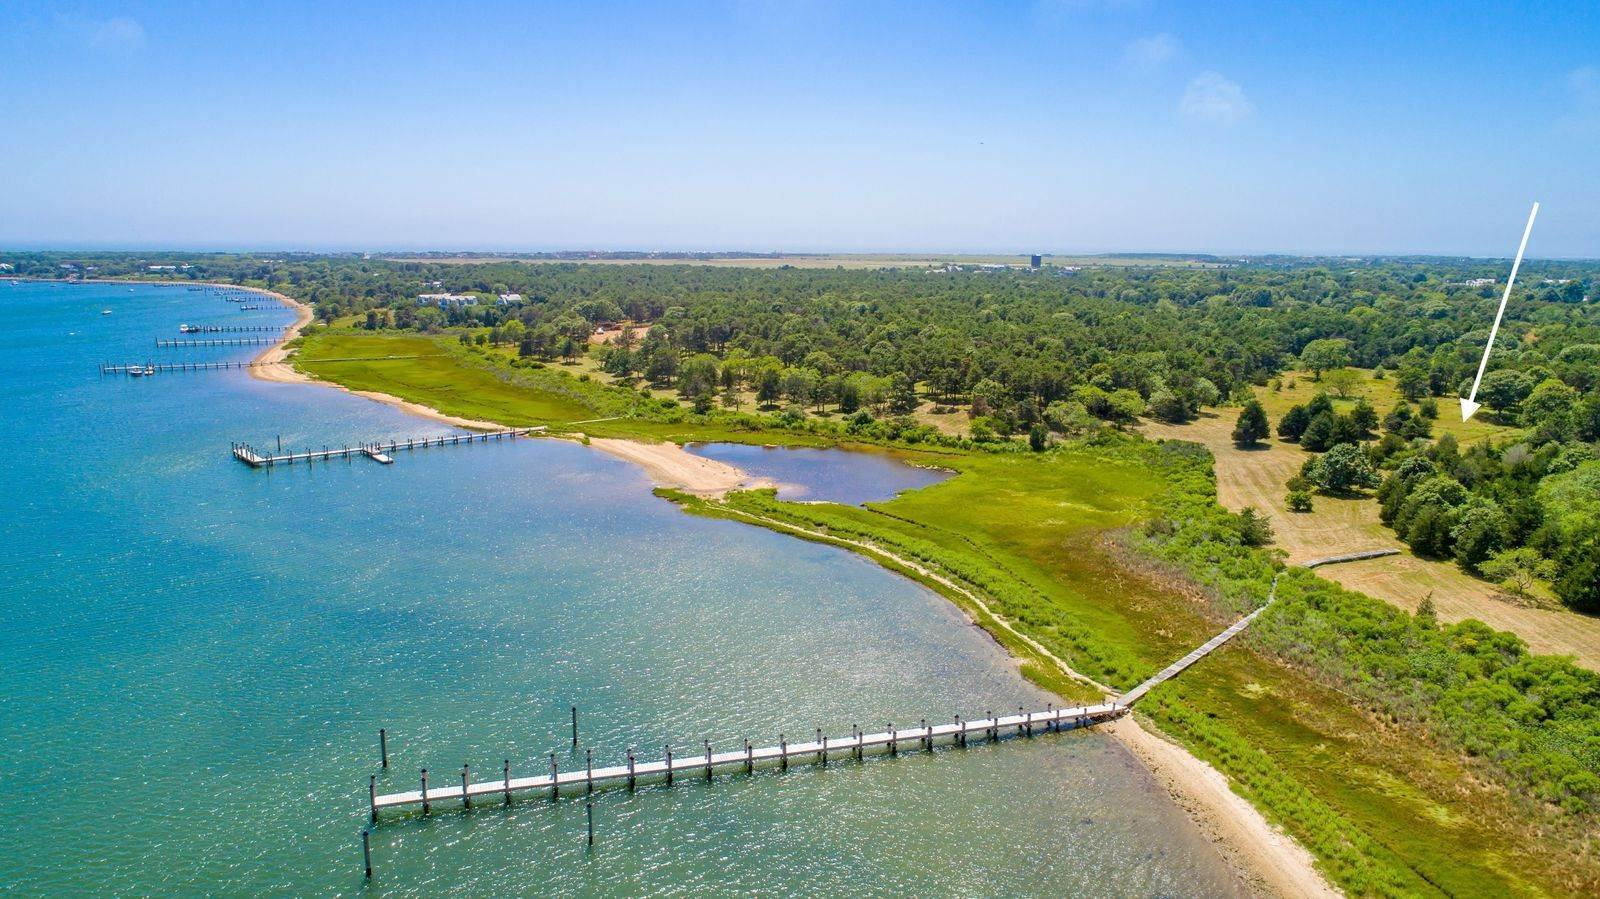 Single Family Home vì Bán tại 16 Bayside North-Lot 1 Edgartown, Massachusetts,02539 Hoa Kỳ